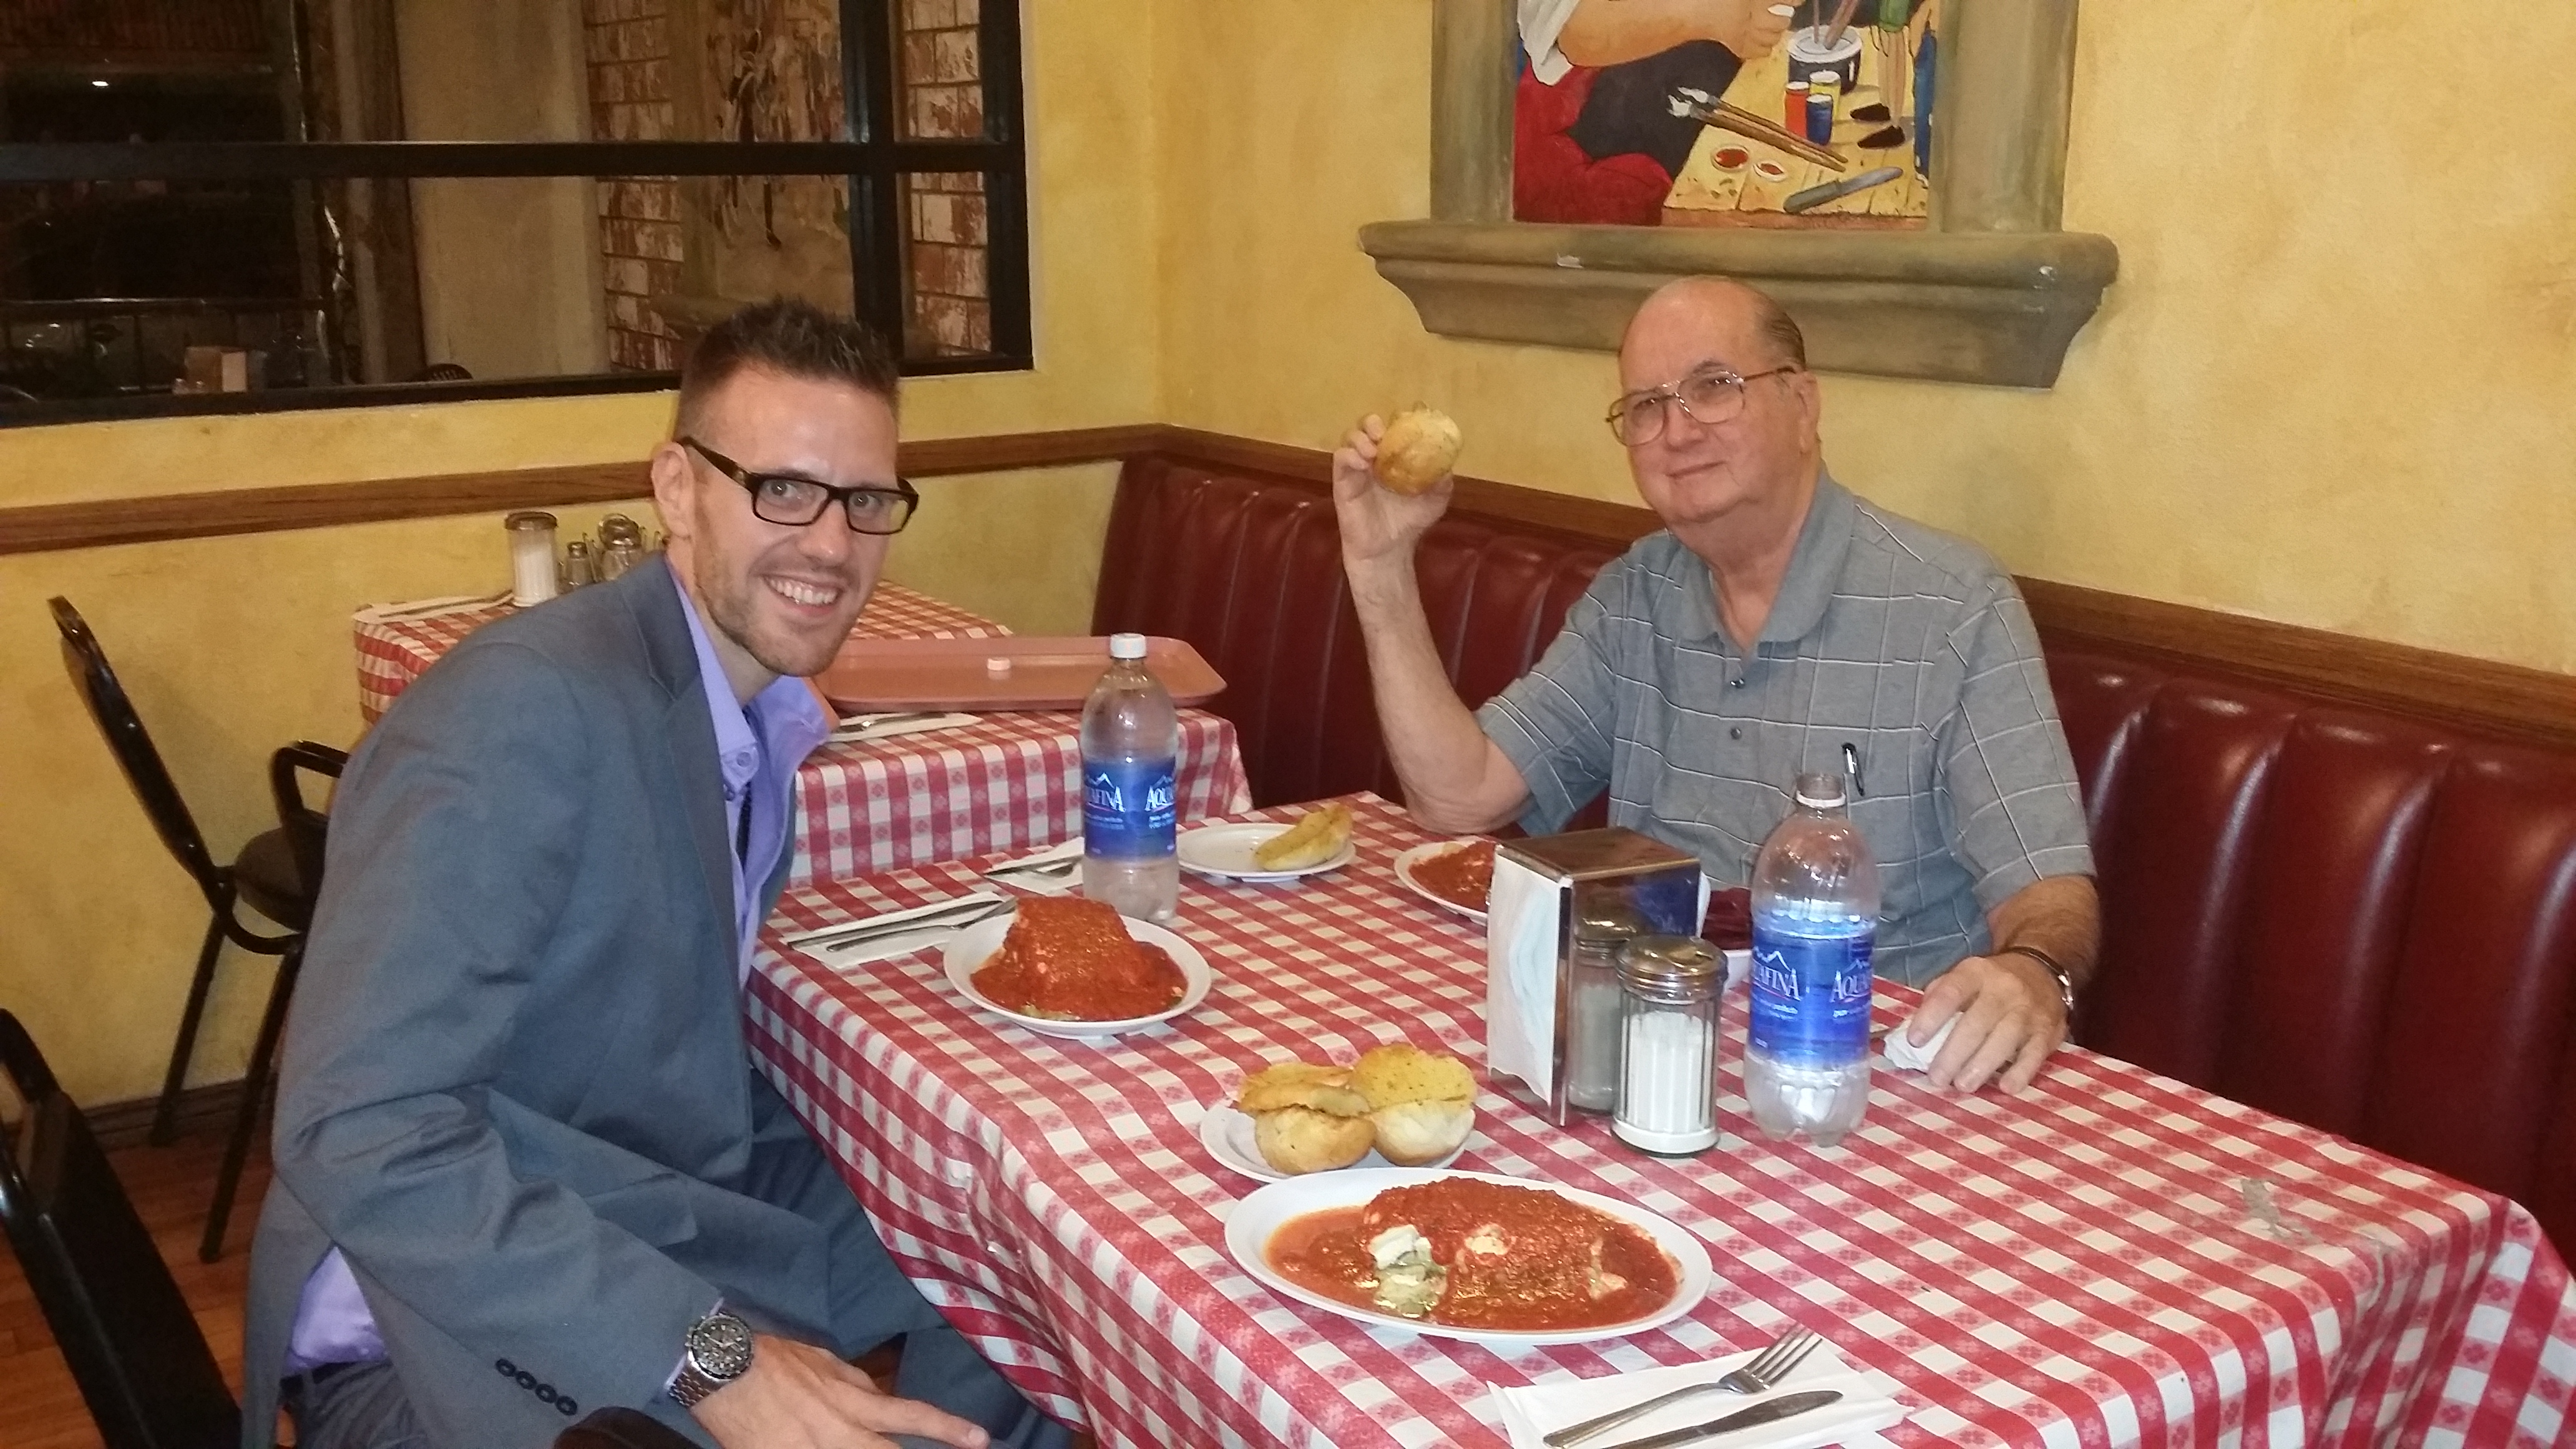 Jonny and Jordan enjoying the best Italian food on the planet at Monte Carlo's Deli & Pinocchio's in Burbank, California.